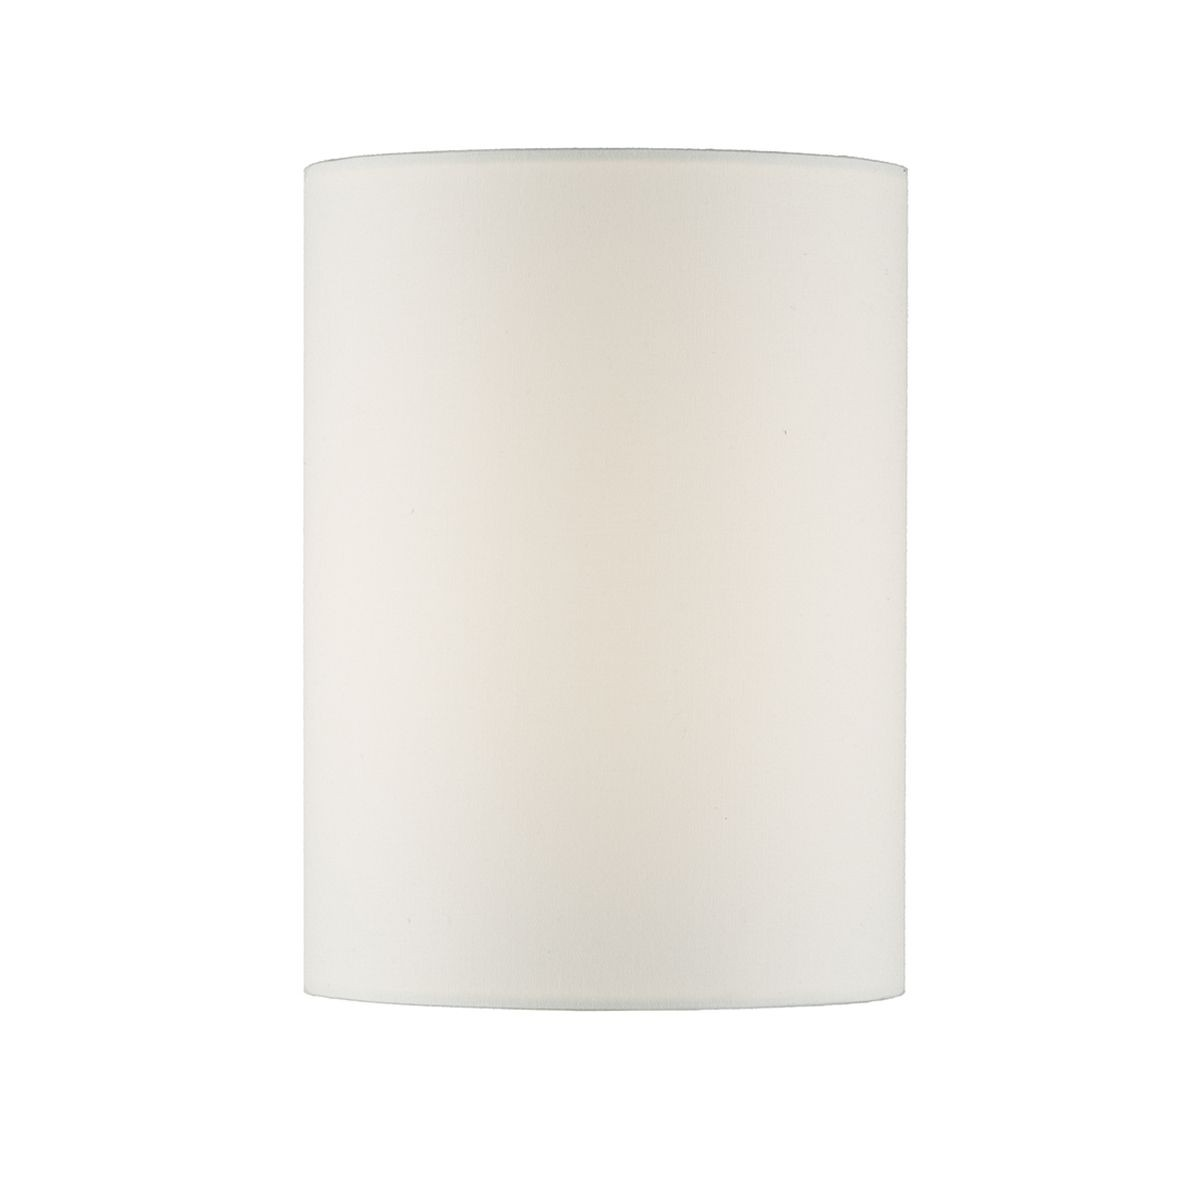 Tuscan Wall Bracket Lamp shade